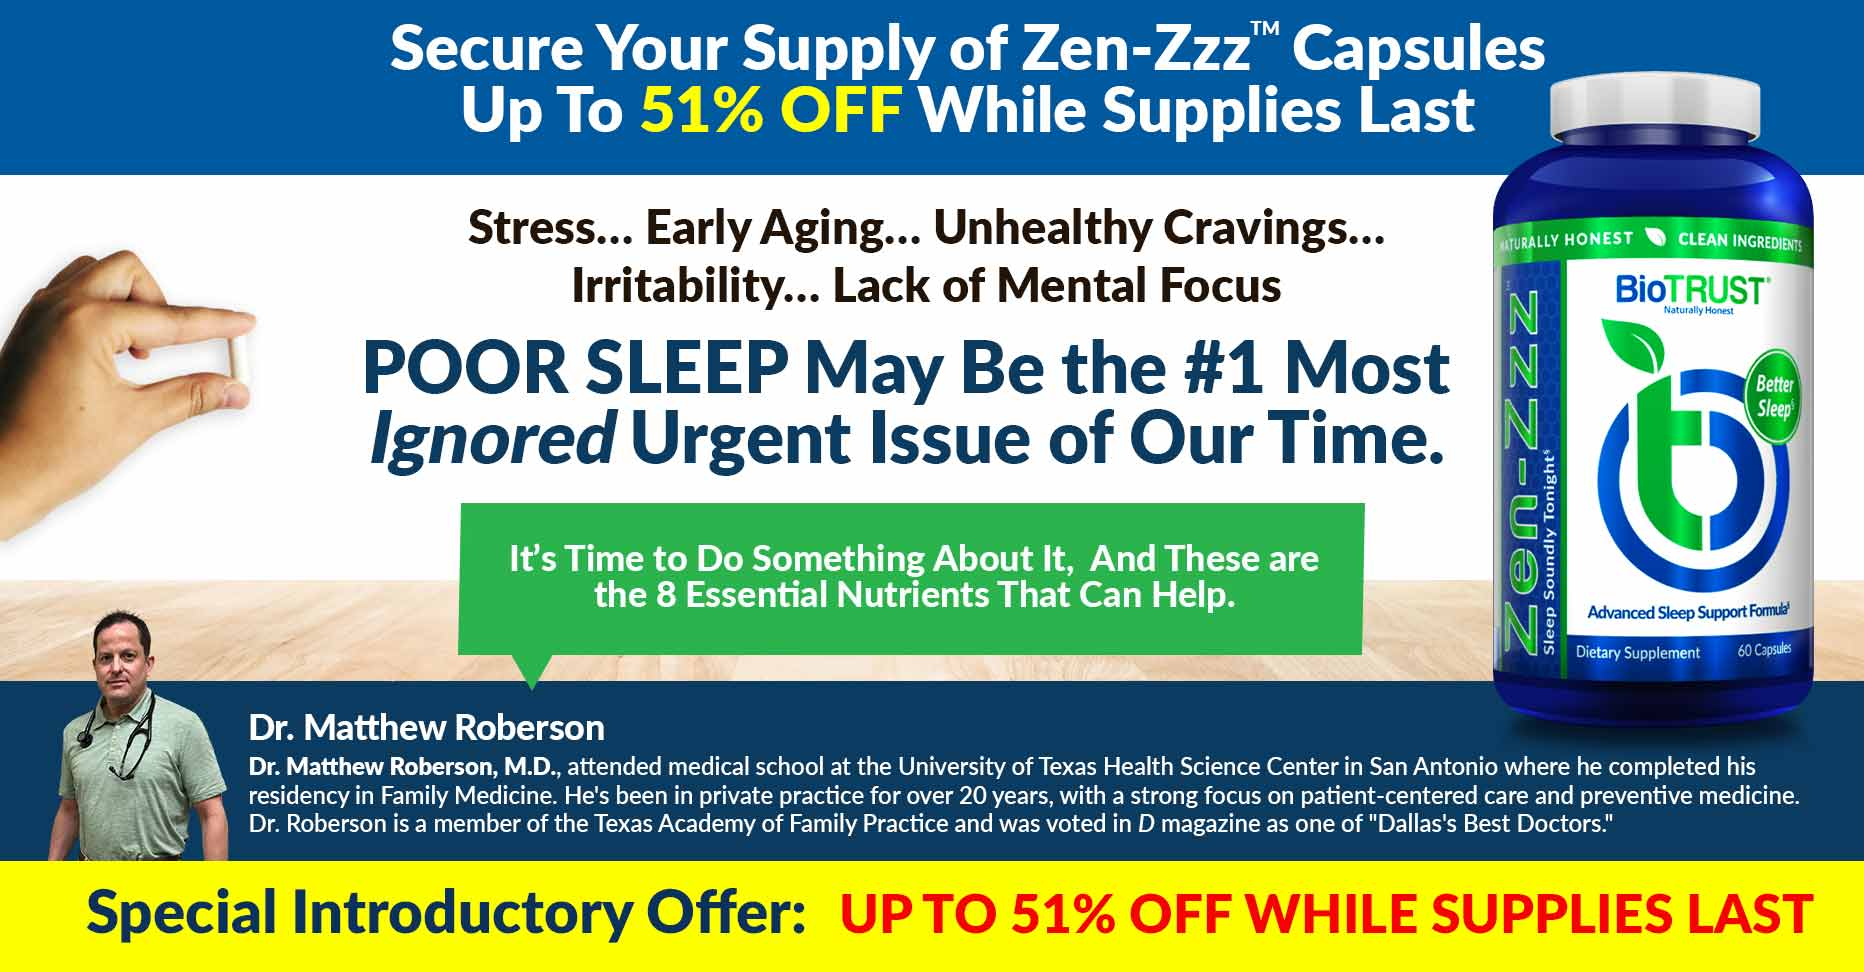 Secure Your Supply of Zen-Zzz - 51% OFF